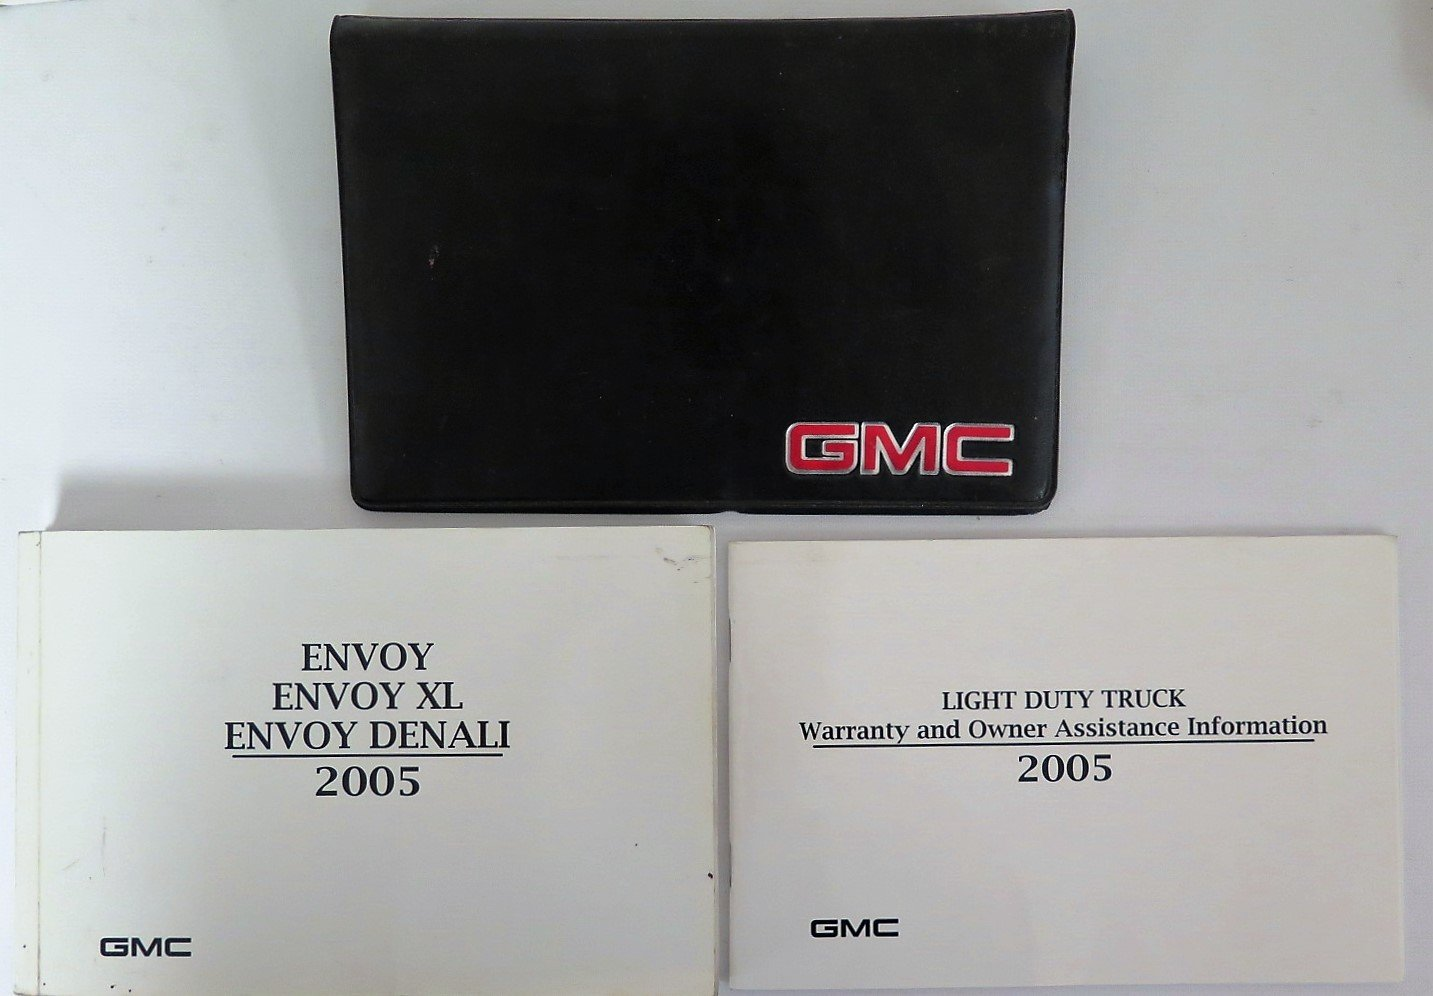 Amazon.com: 2005 GMC Envoy and XL and Denali Owners Manual: GMC: Automotive